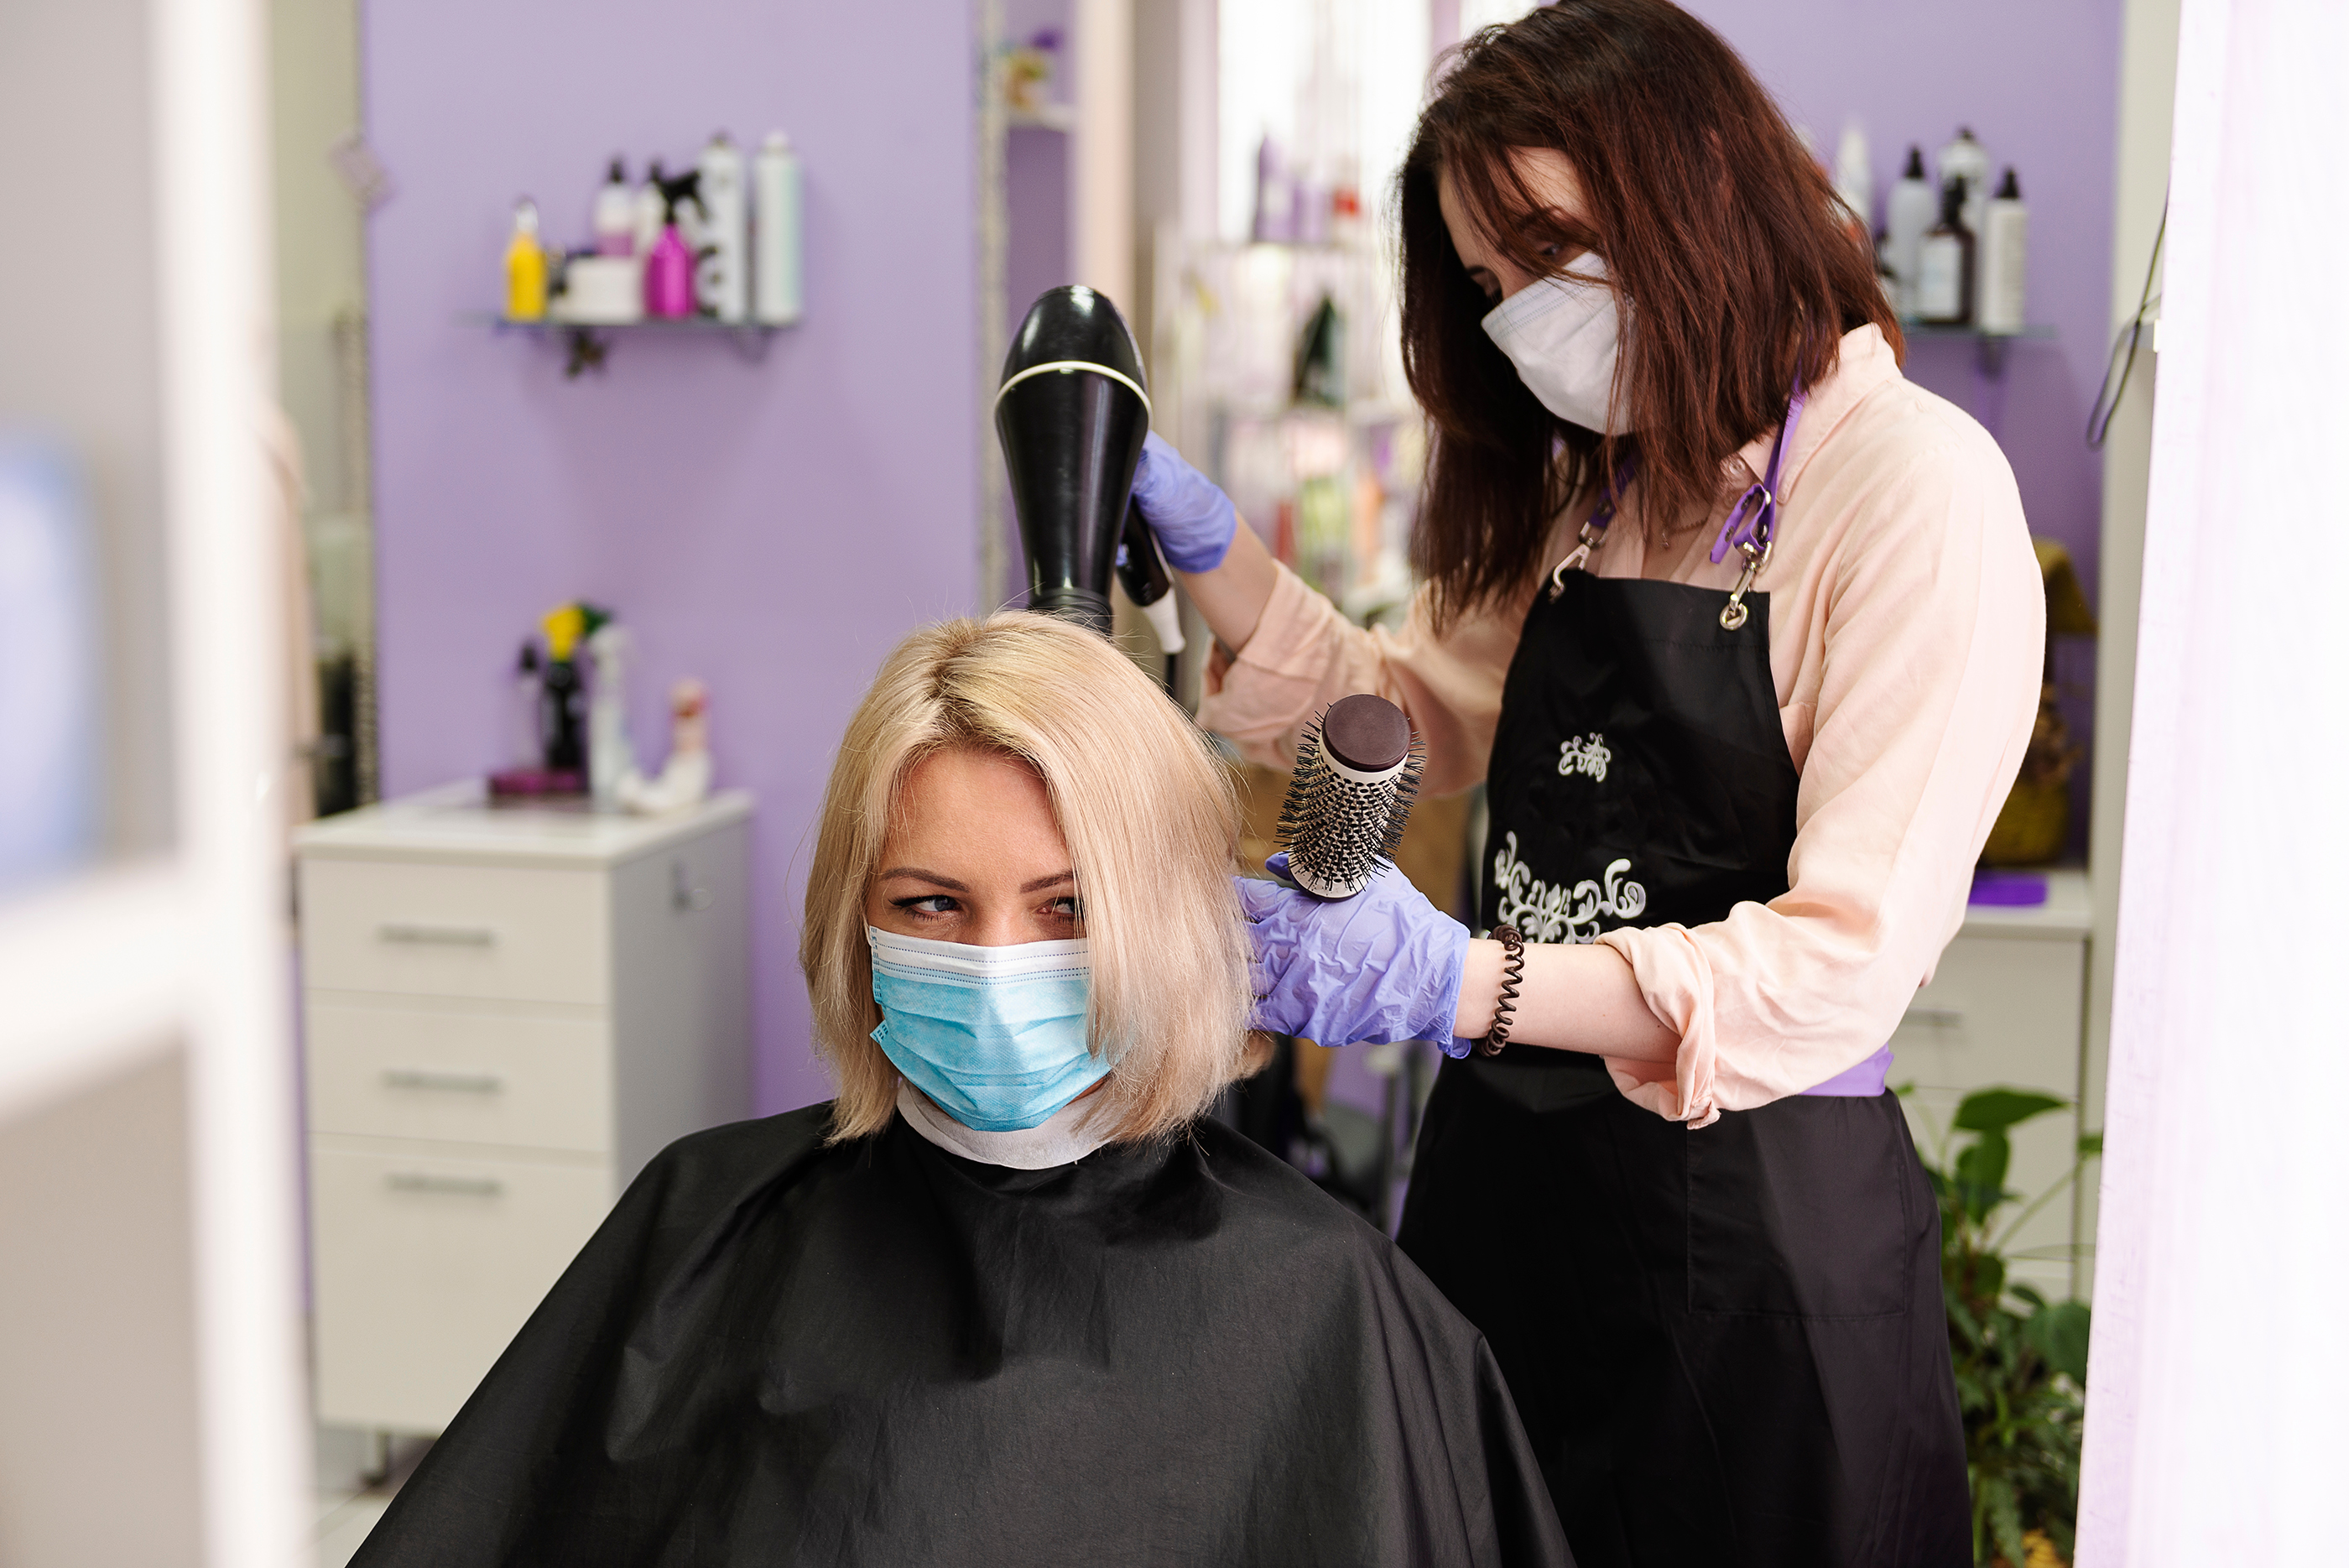 Hair Salons Are Open, but Should You Go?  Rutgers University